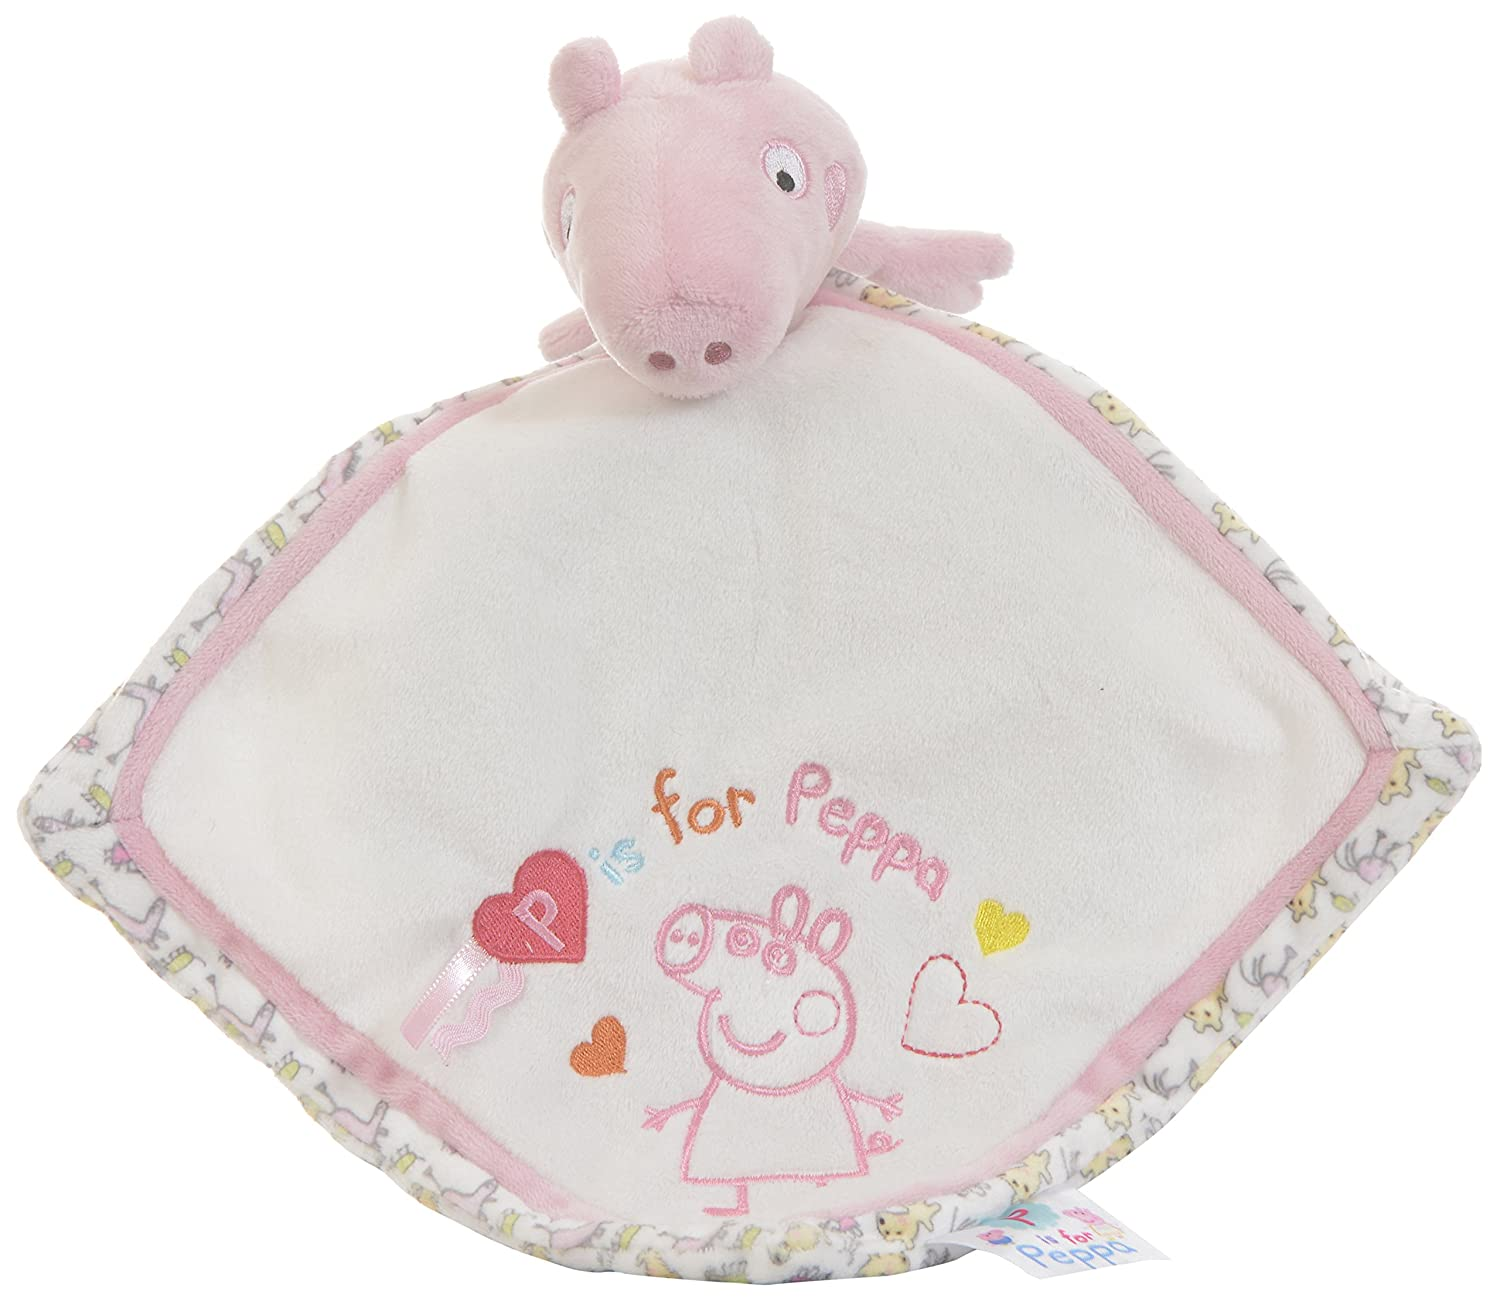 Peppa Pig Comfort Blanket for Baby, By Rainbow Designs BabyCenter PP1287